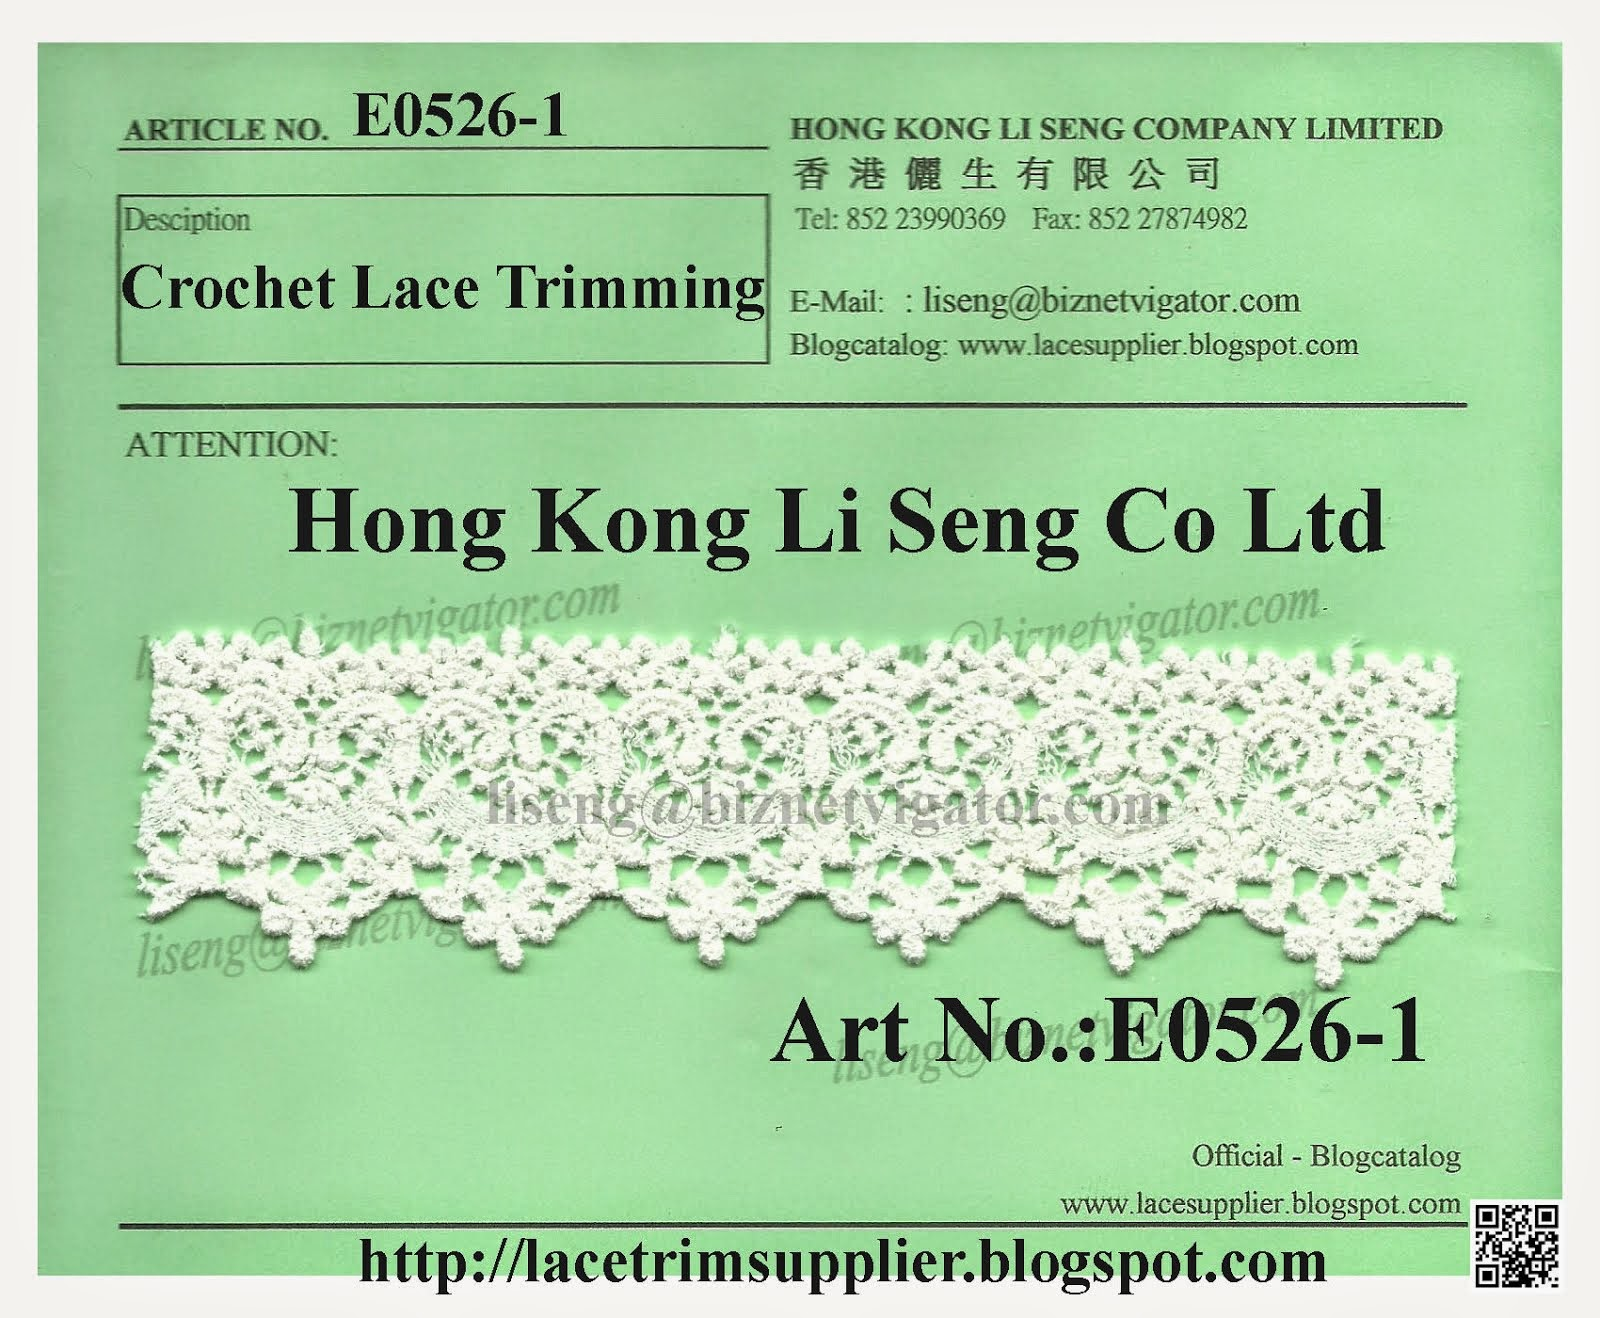 Crochet Lace Trimming Manufacturer - Hong Kong Li Seng Co Ltd